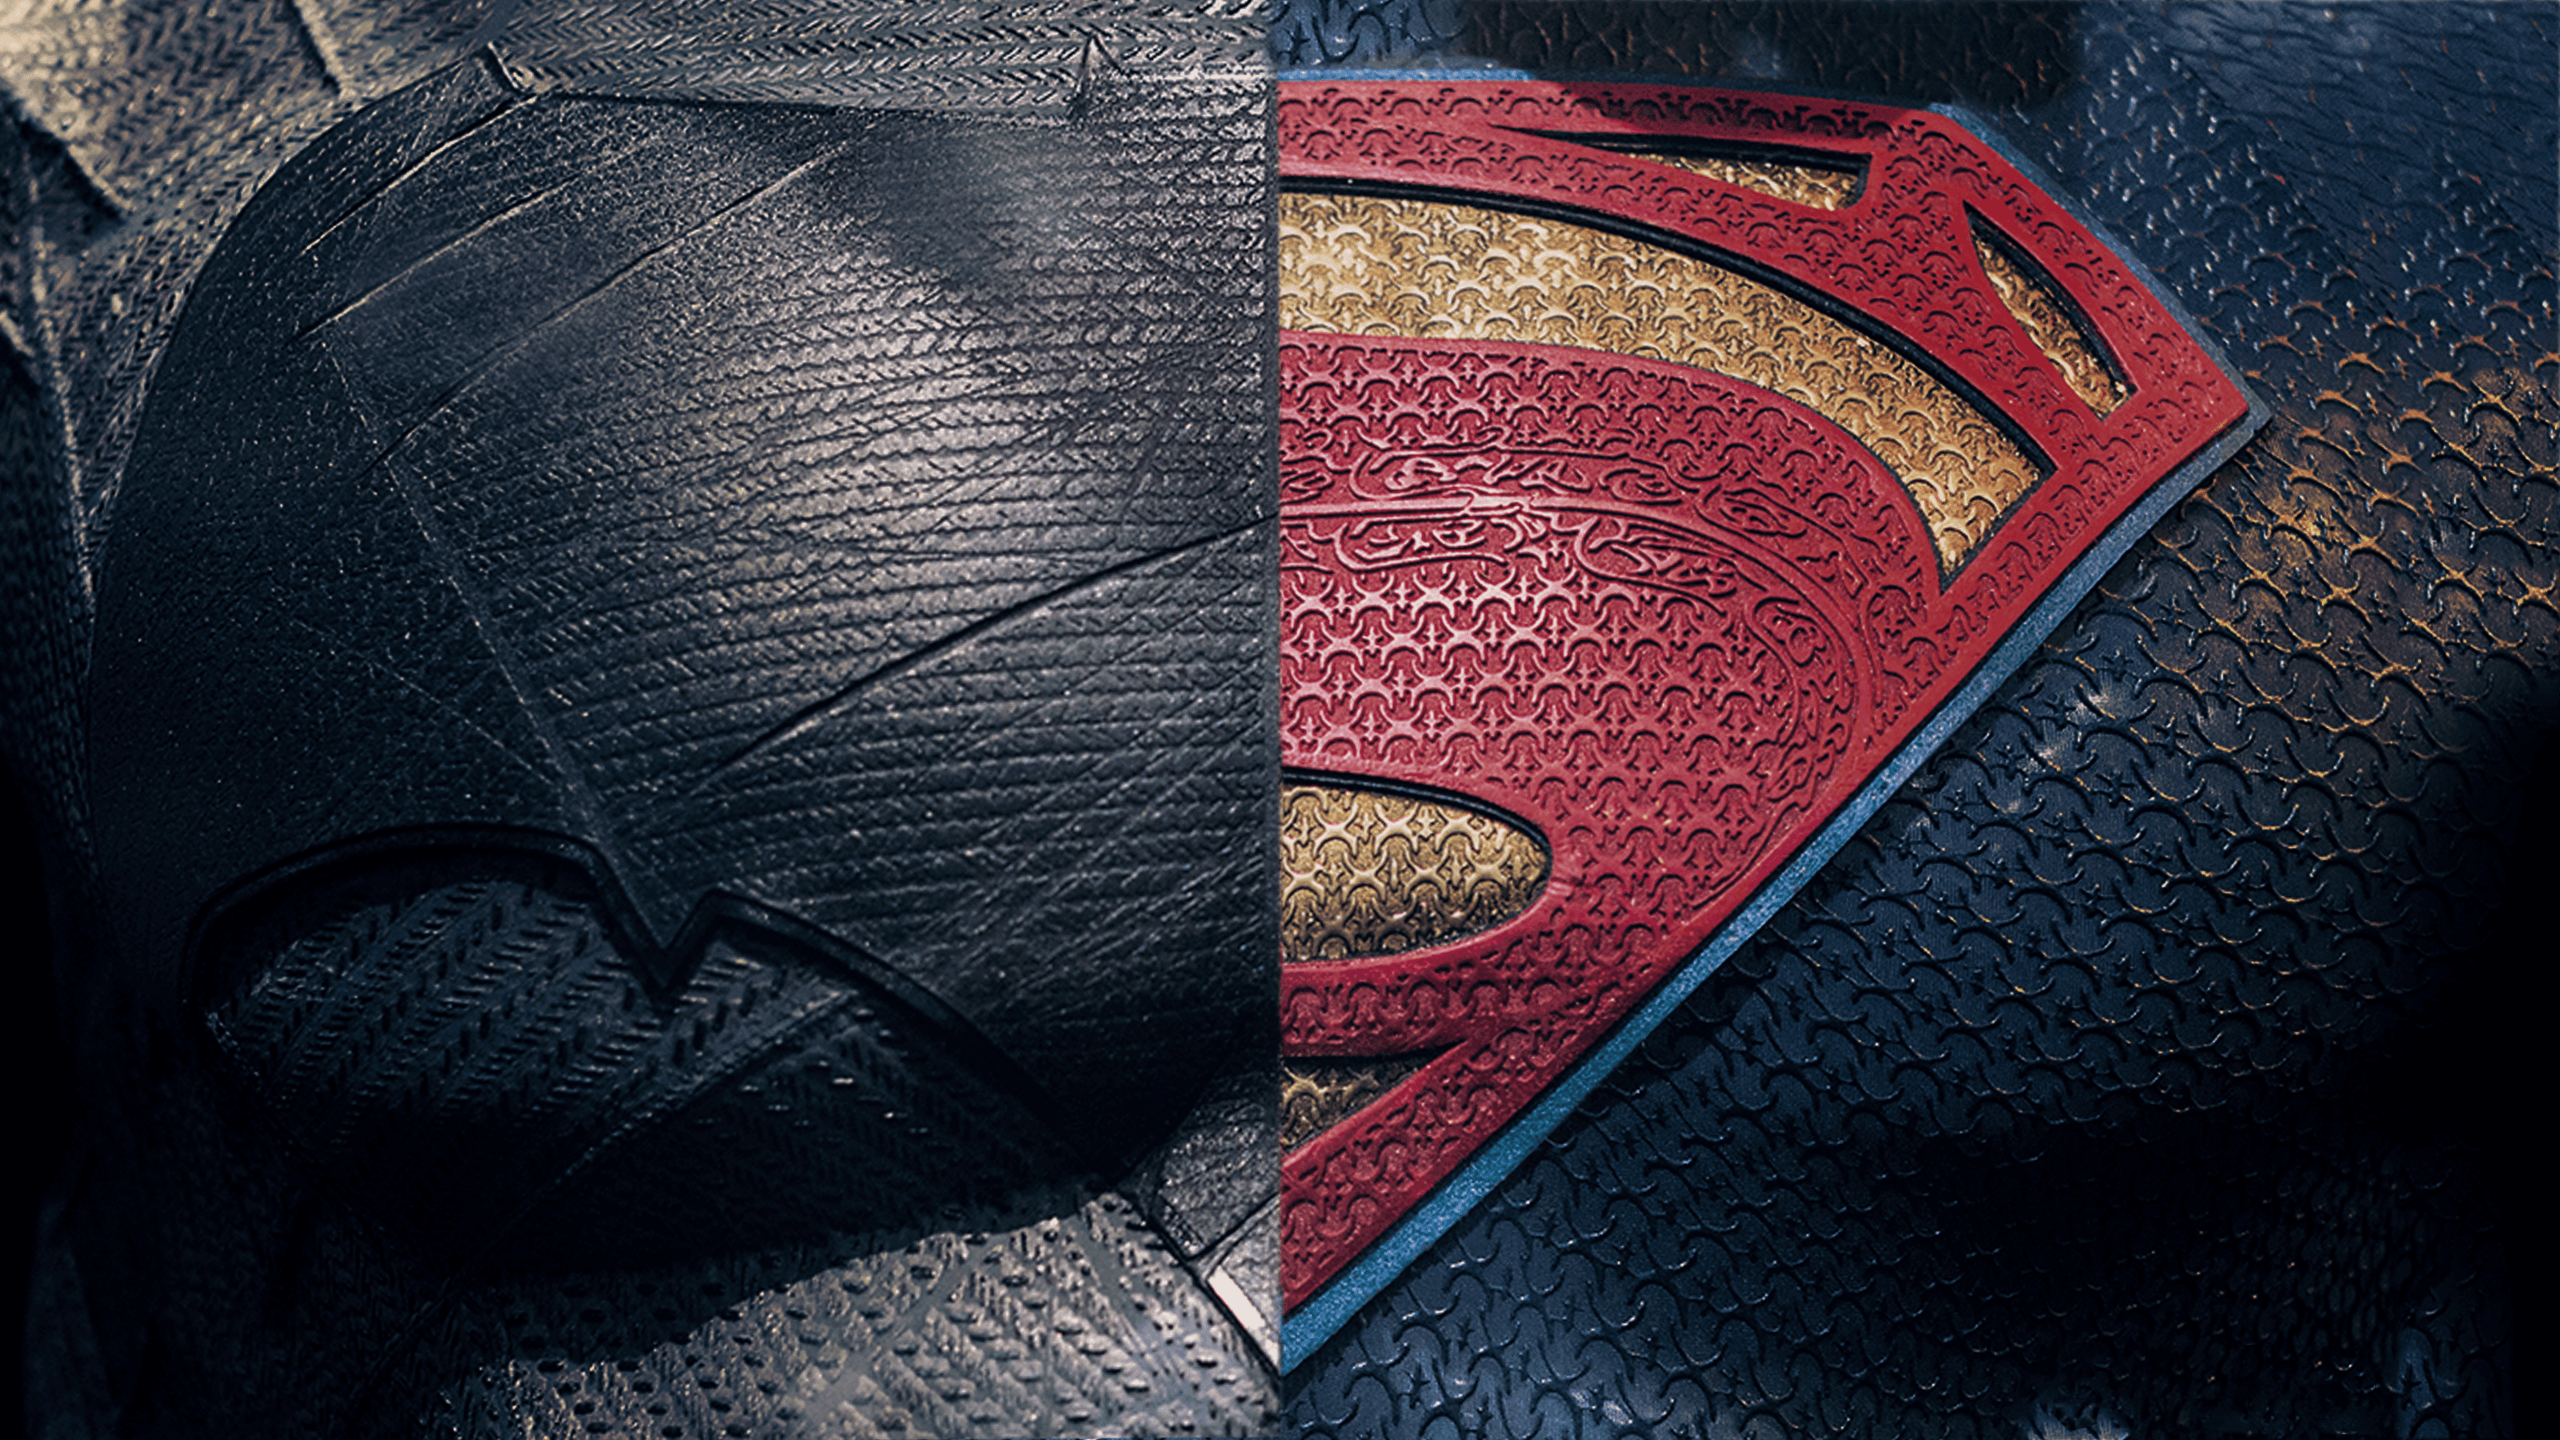 Batman Vs Superman Movie Best Hd Wallpaper 4618